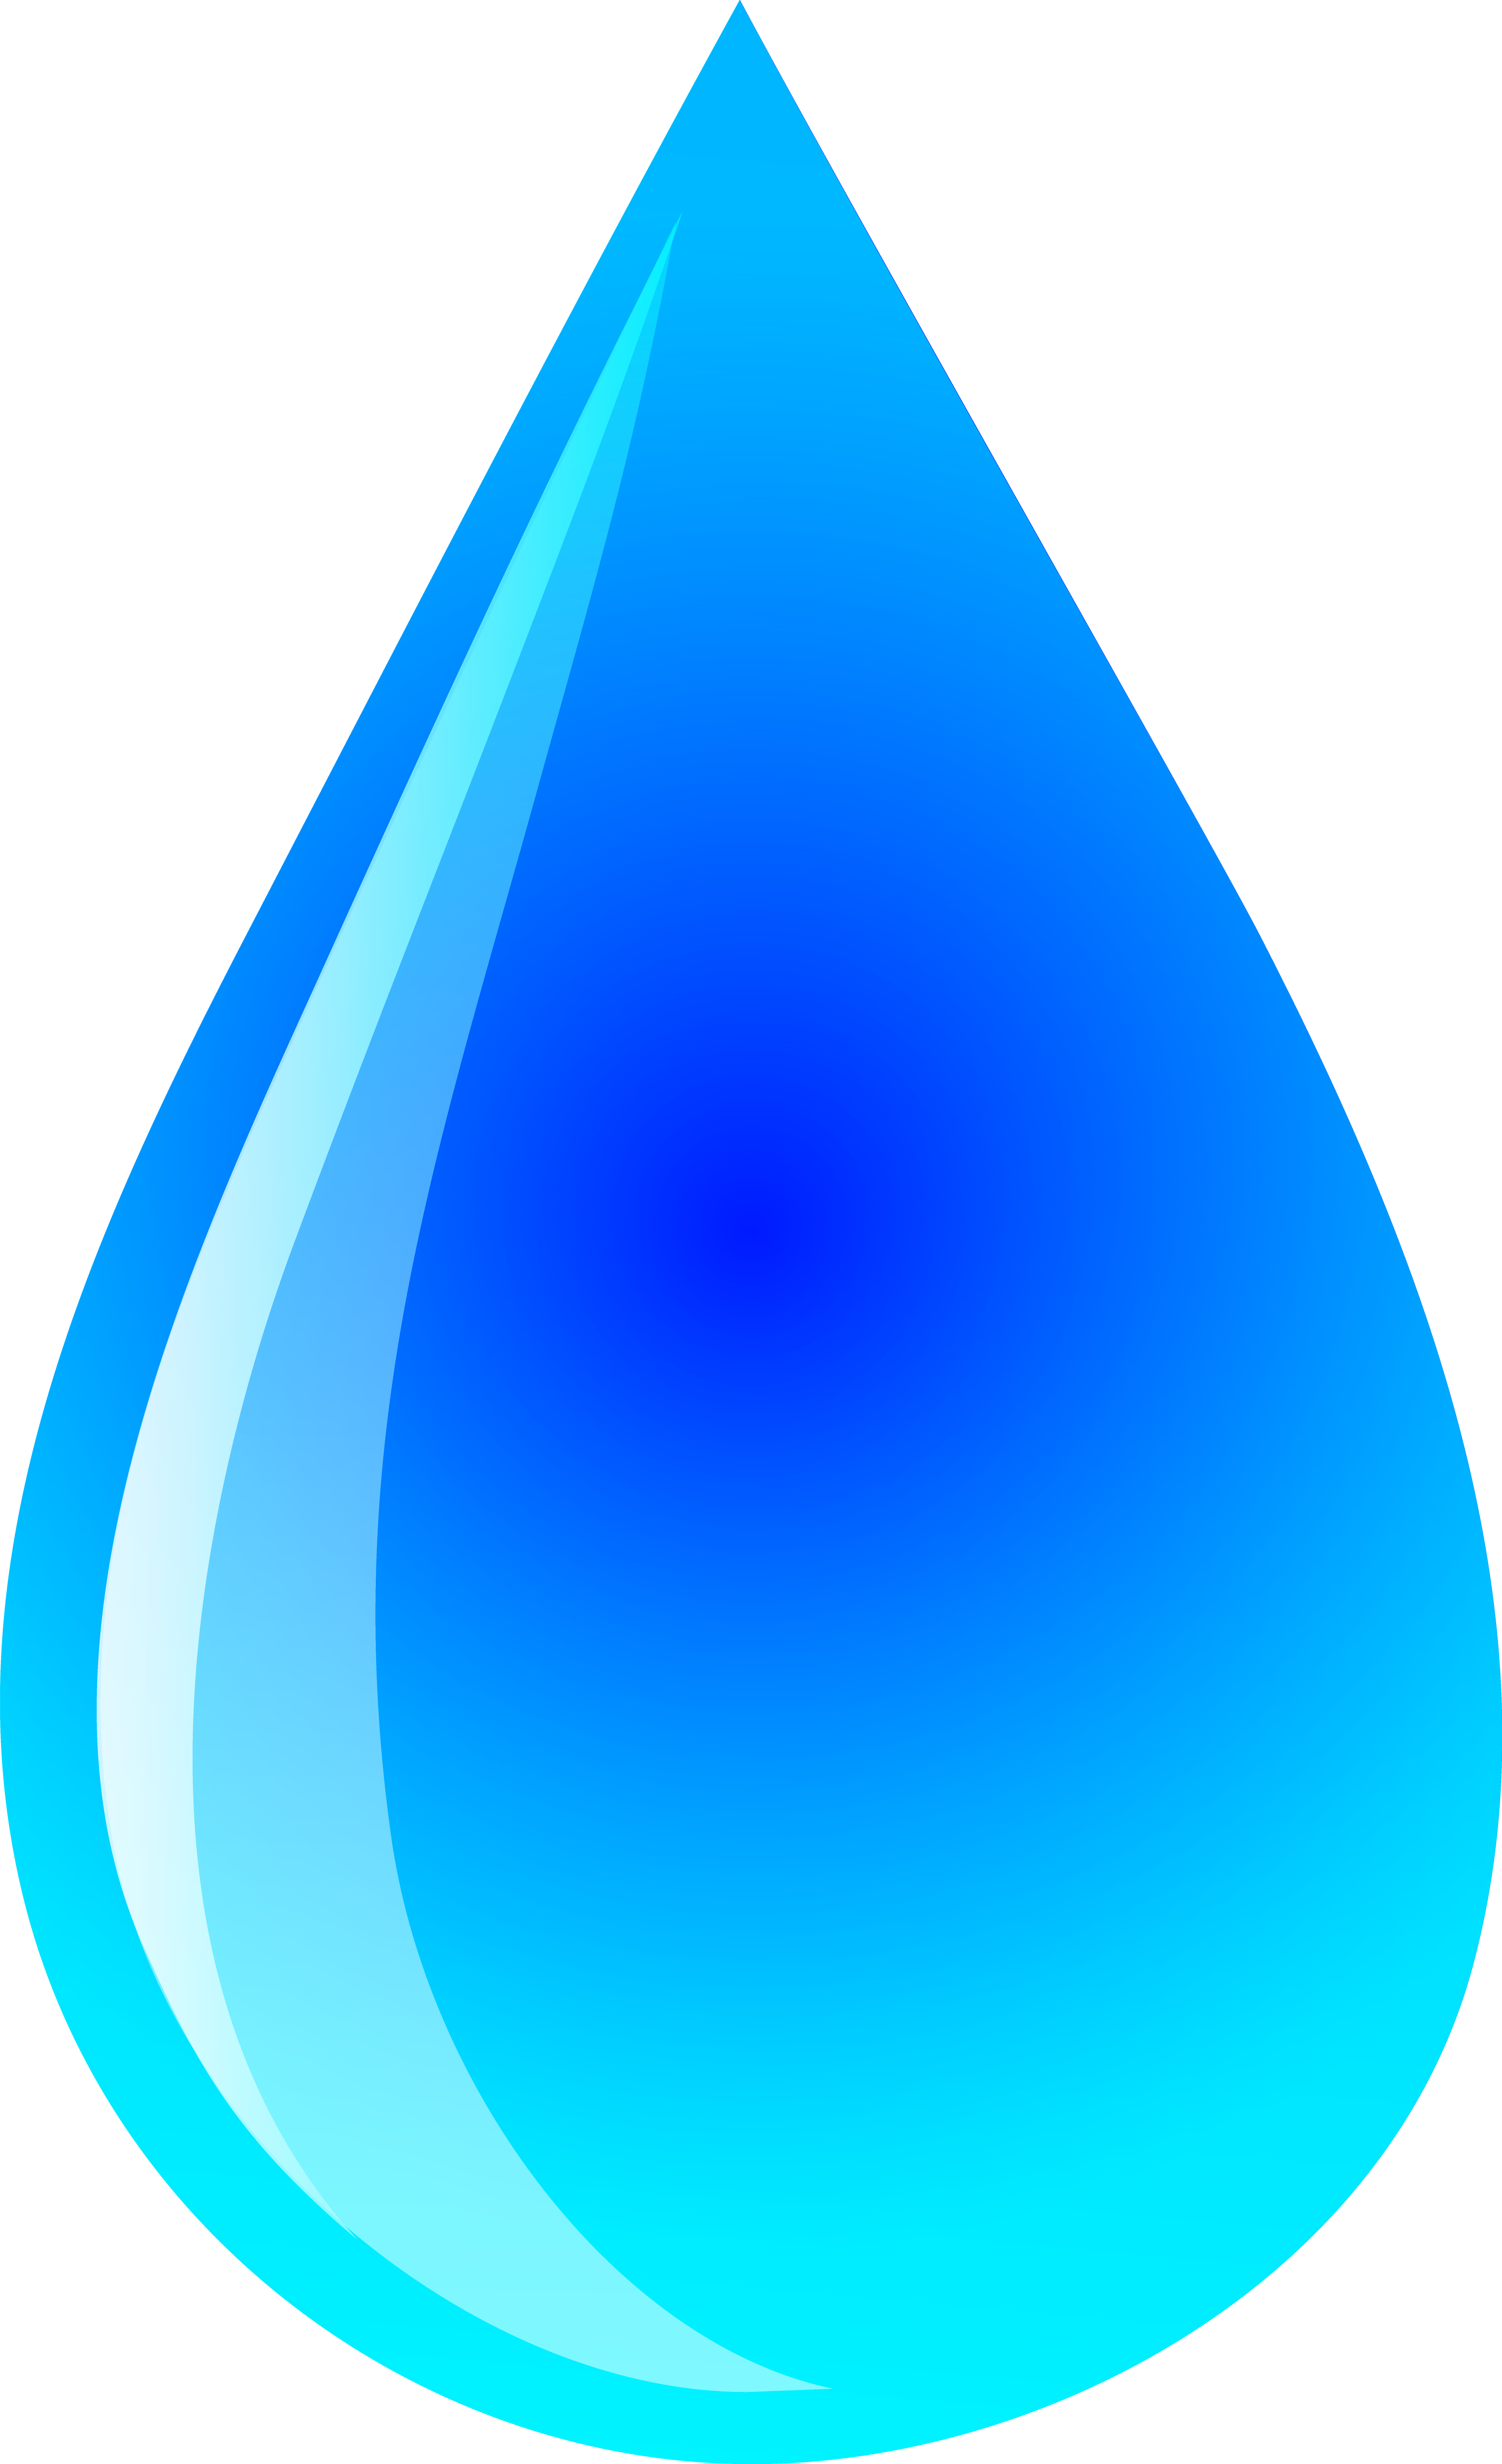 Evaporation clipart ocean. The water cycle with